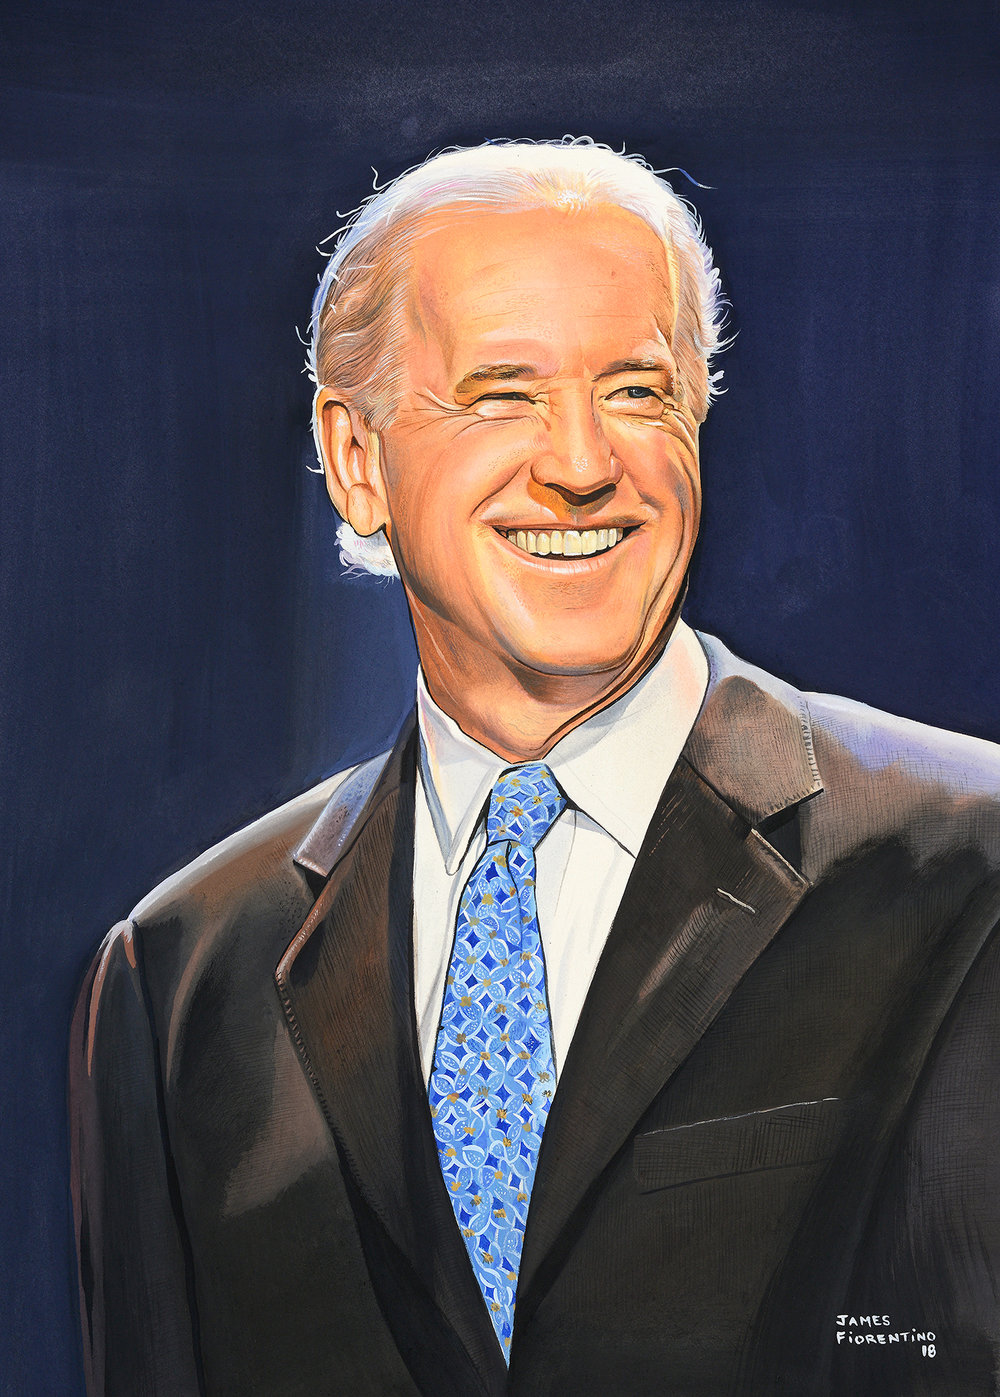 Art-collection of Joe Biden